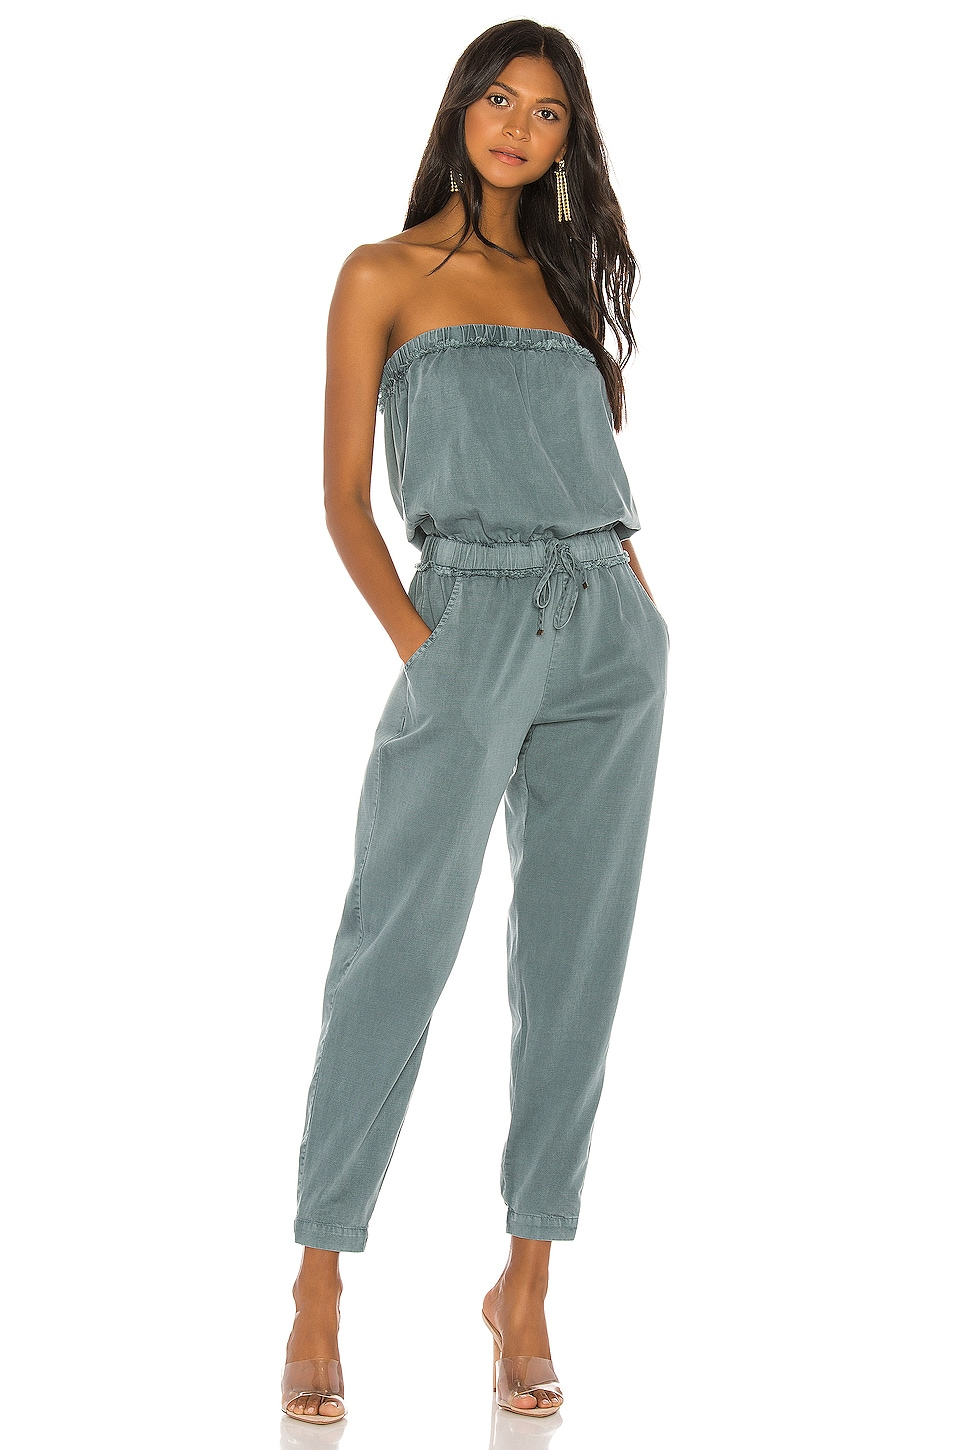 YFB CLOTHING Reeve Jumpsuit in Teal